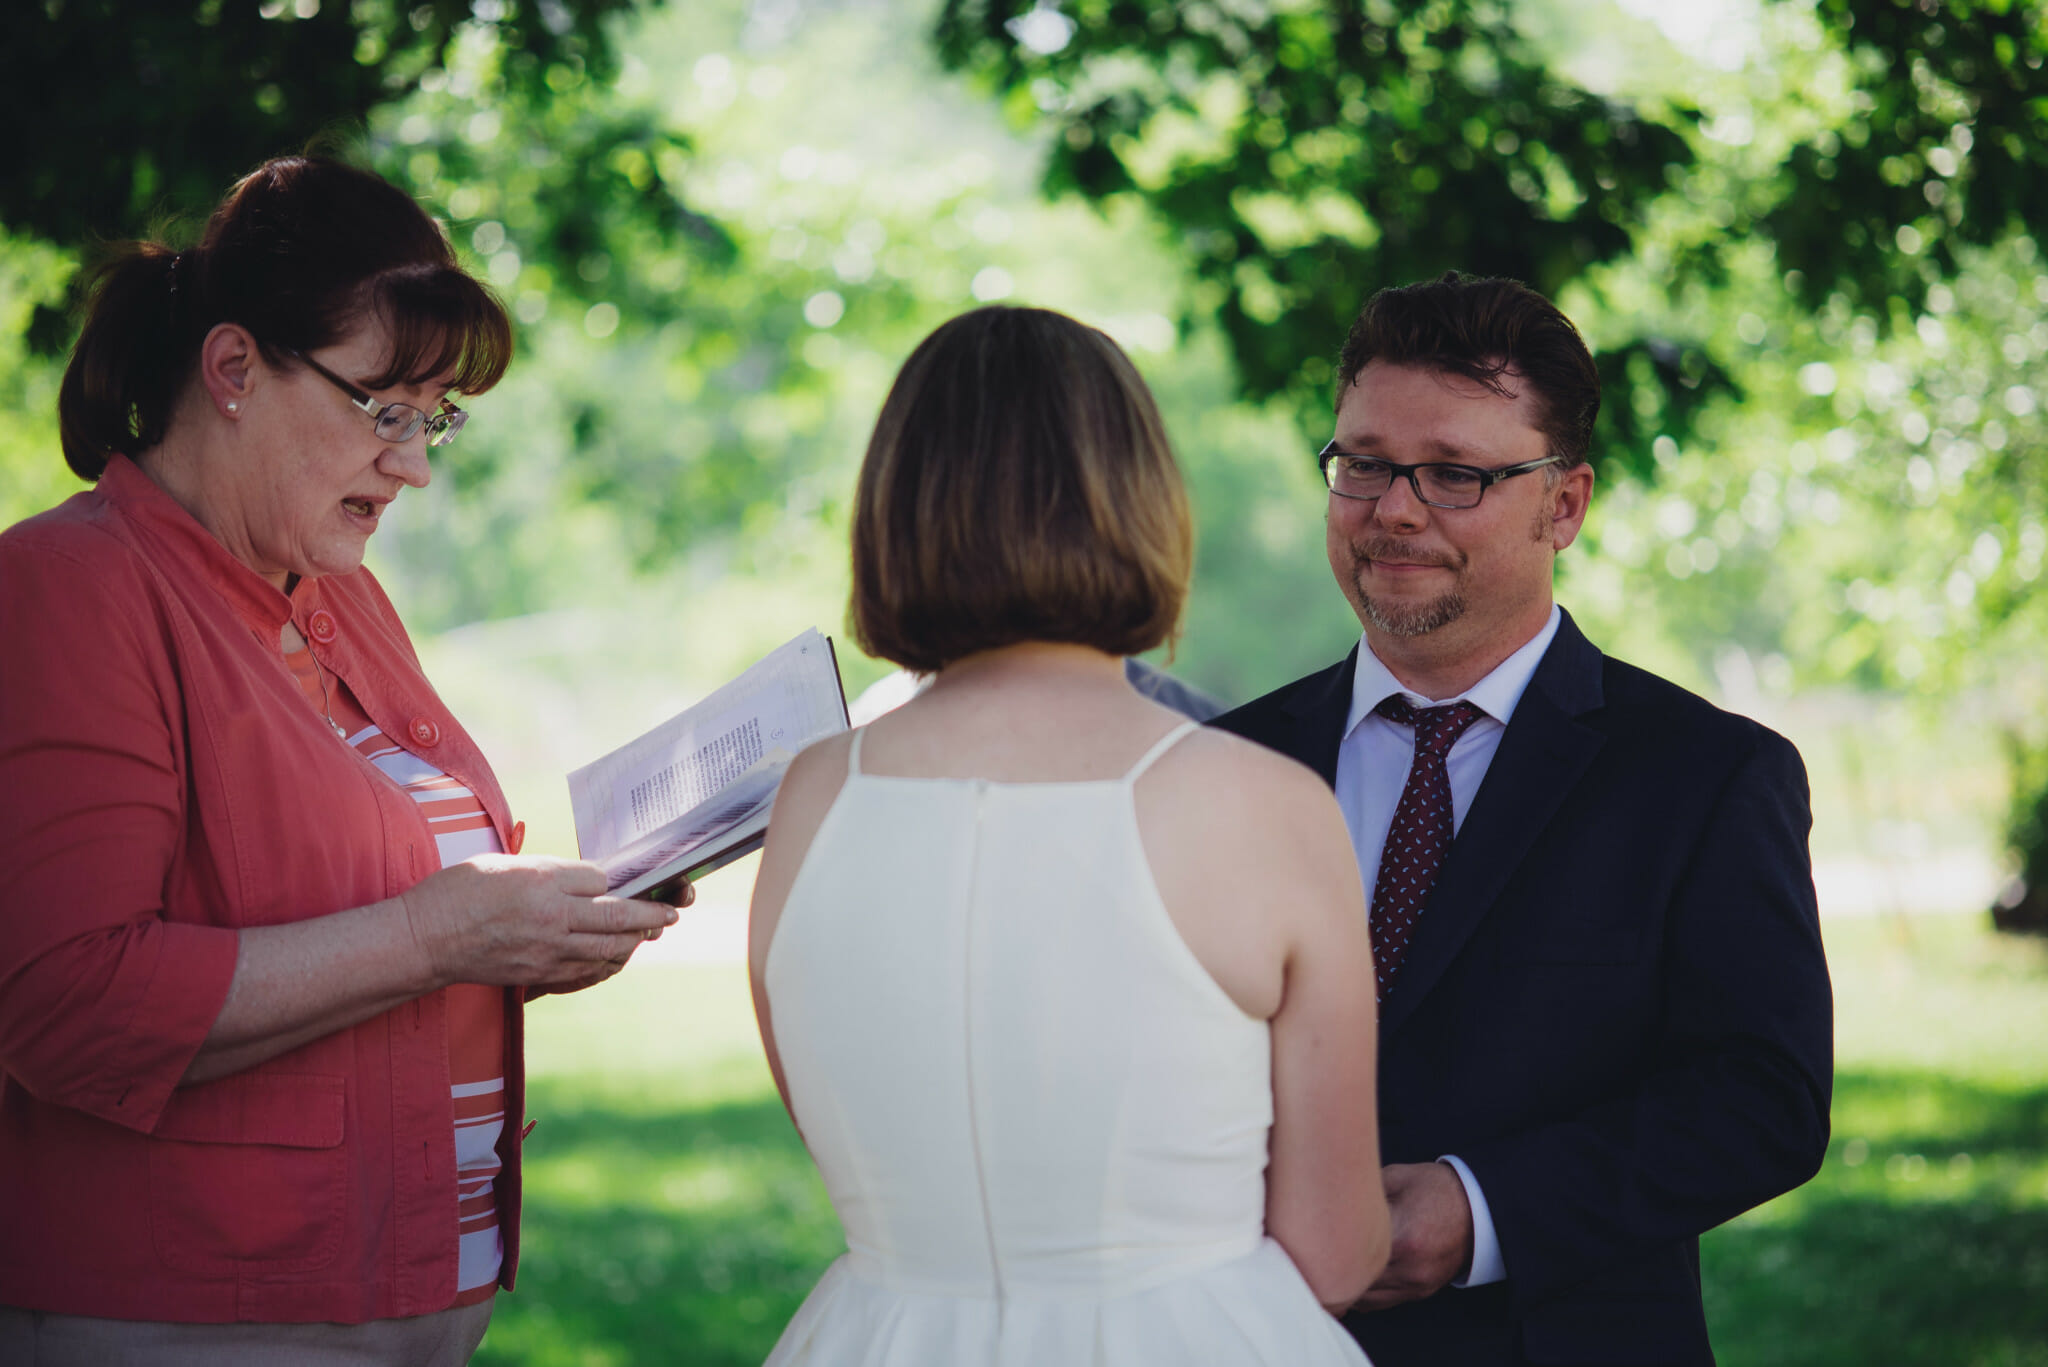 couple says vows at outdoor wedding